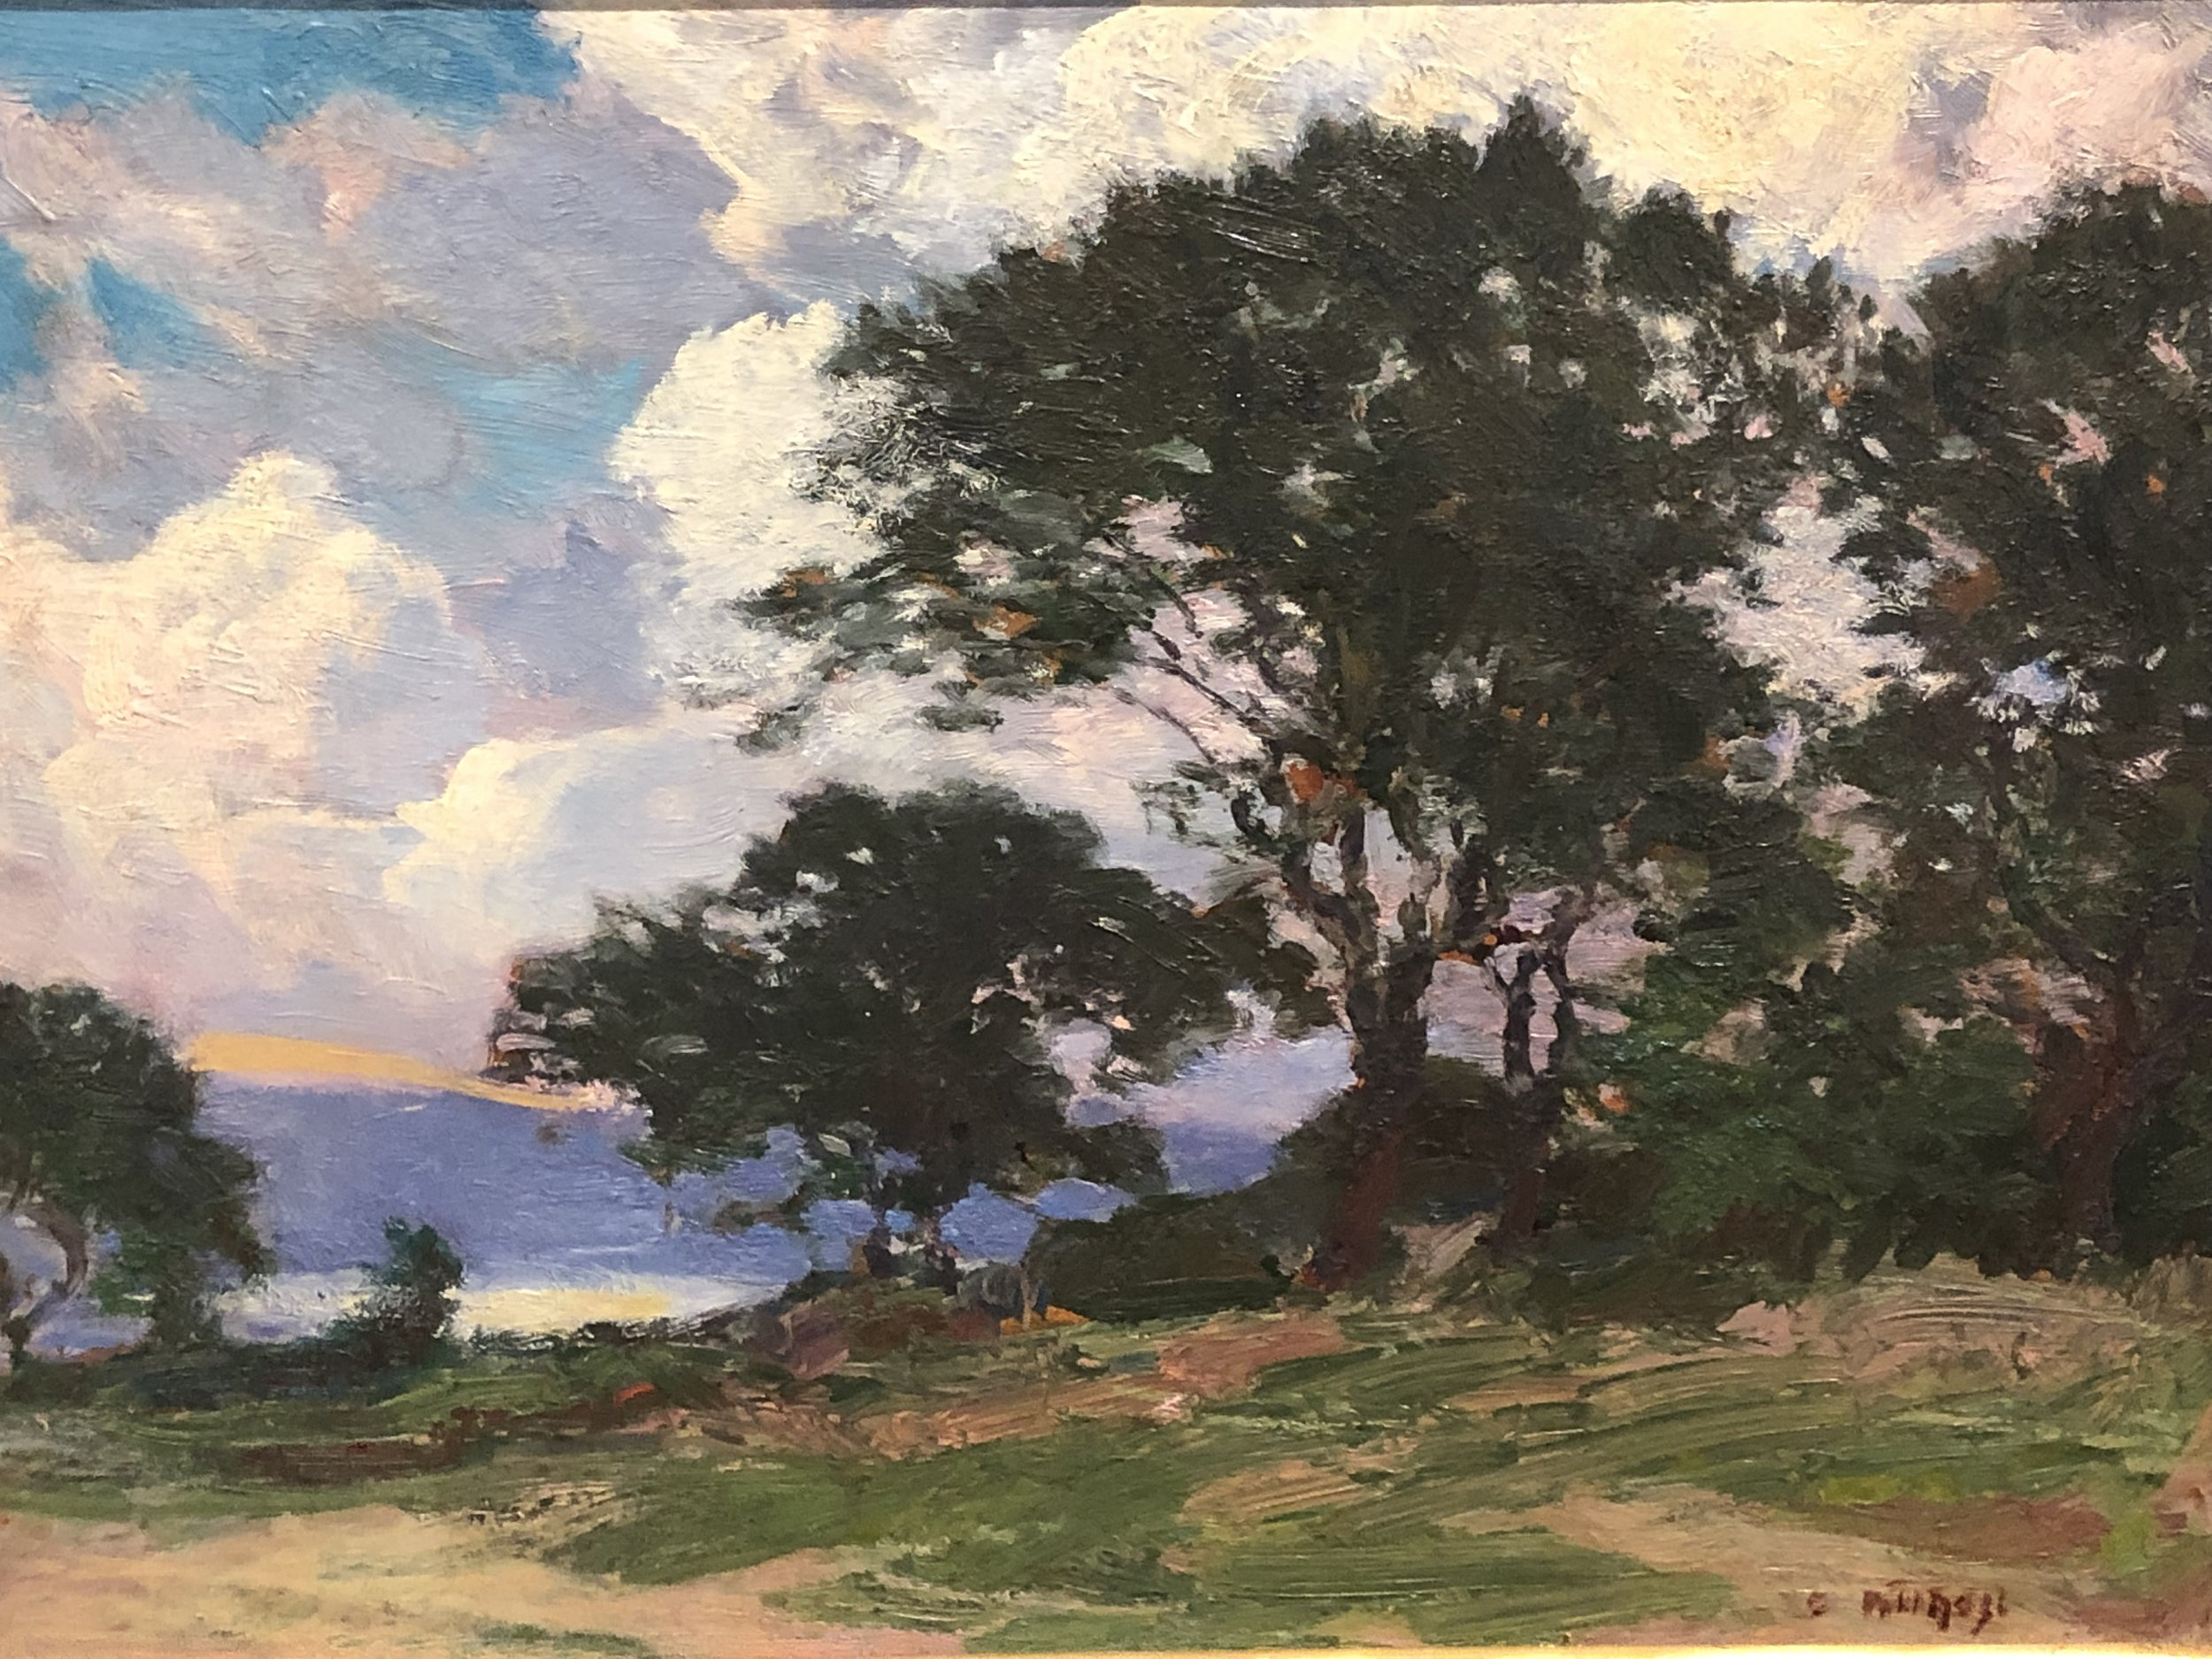 Edward Henry Potthast,  Landscape , n.d., oil on board. Image courtesy of the Cincinnati Art Galleries, DH545..